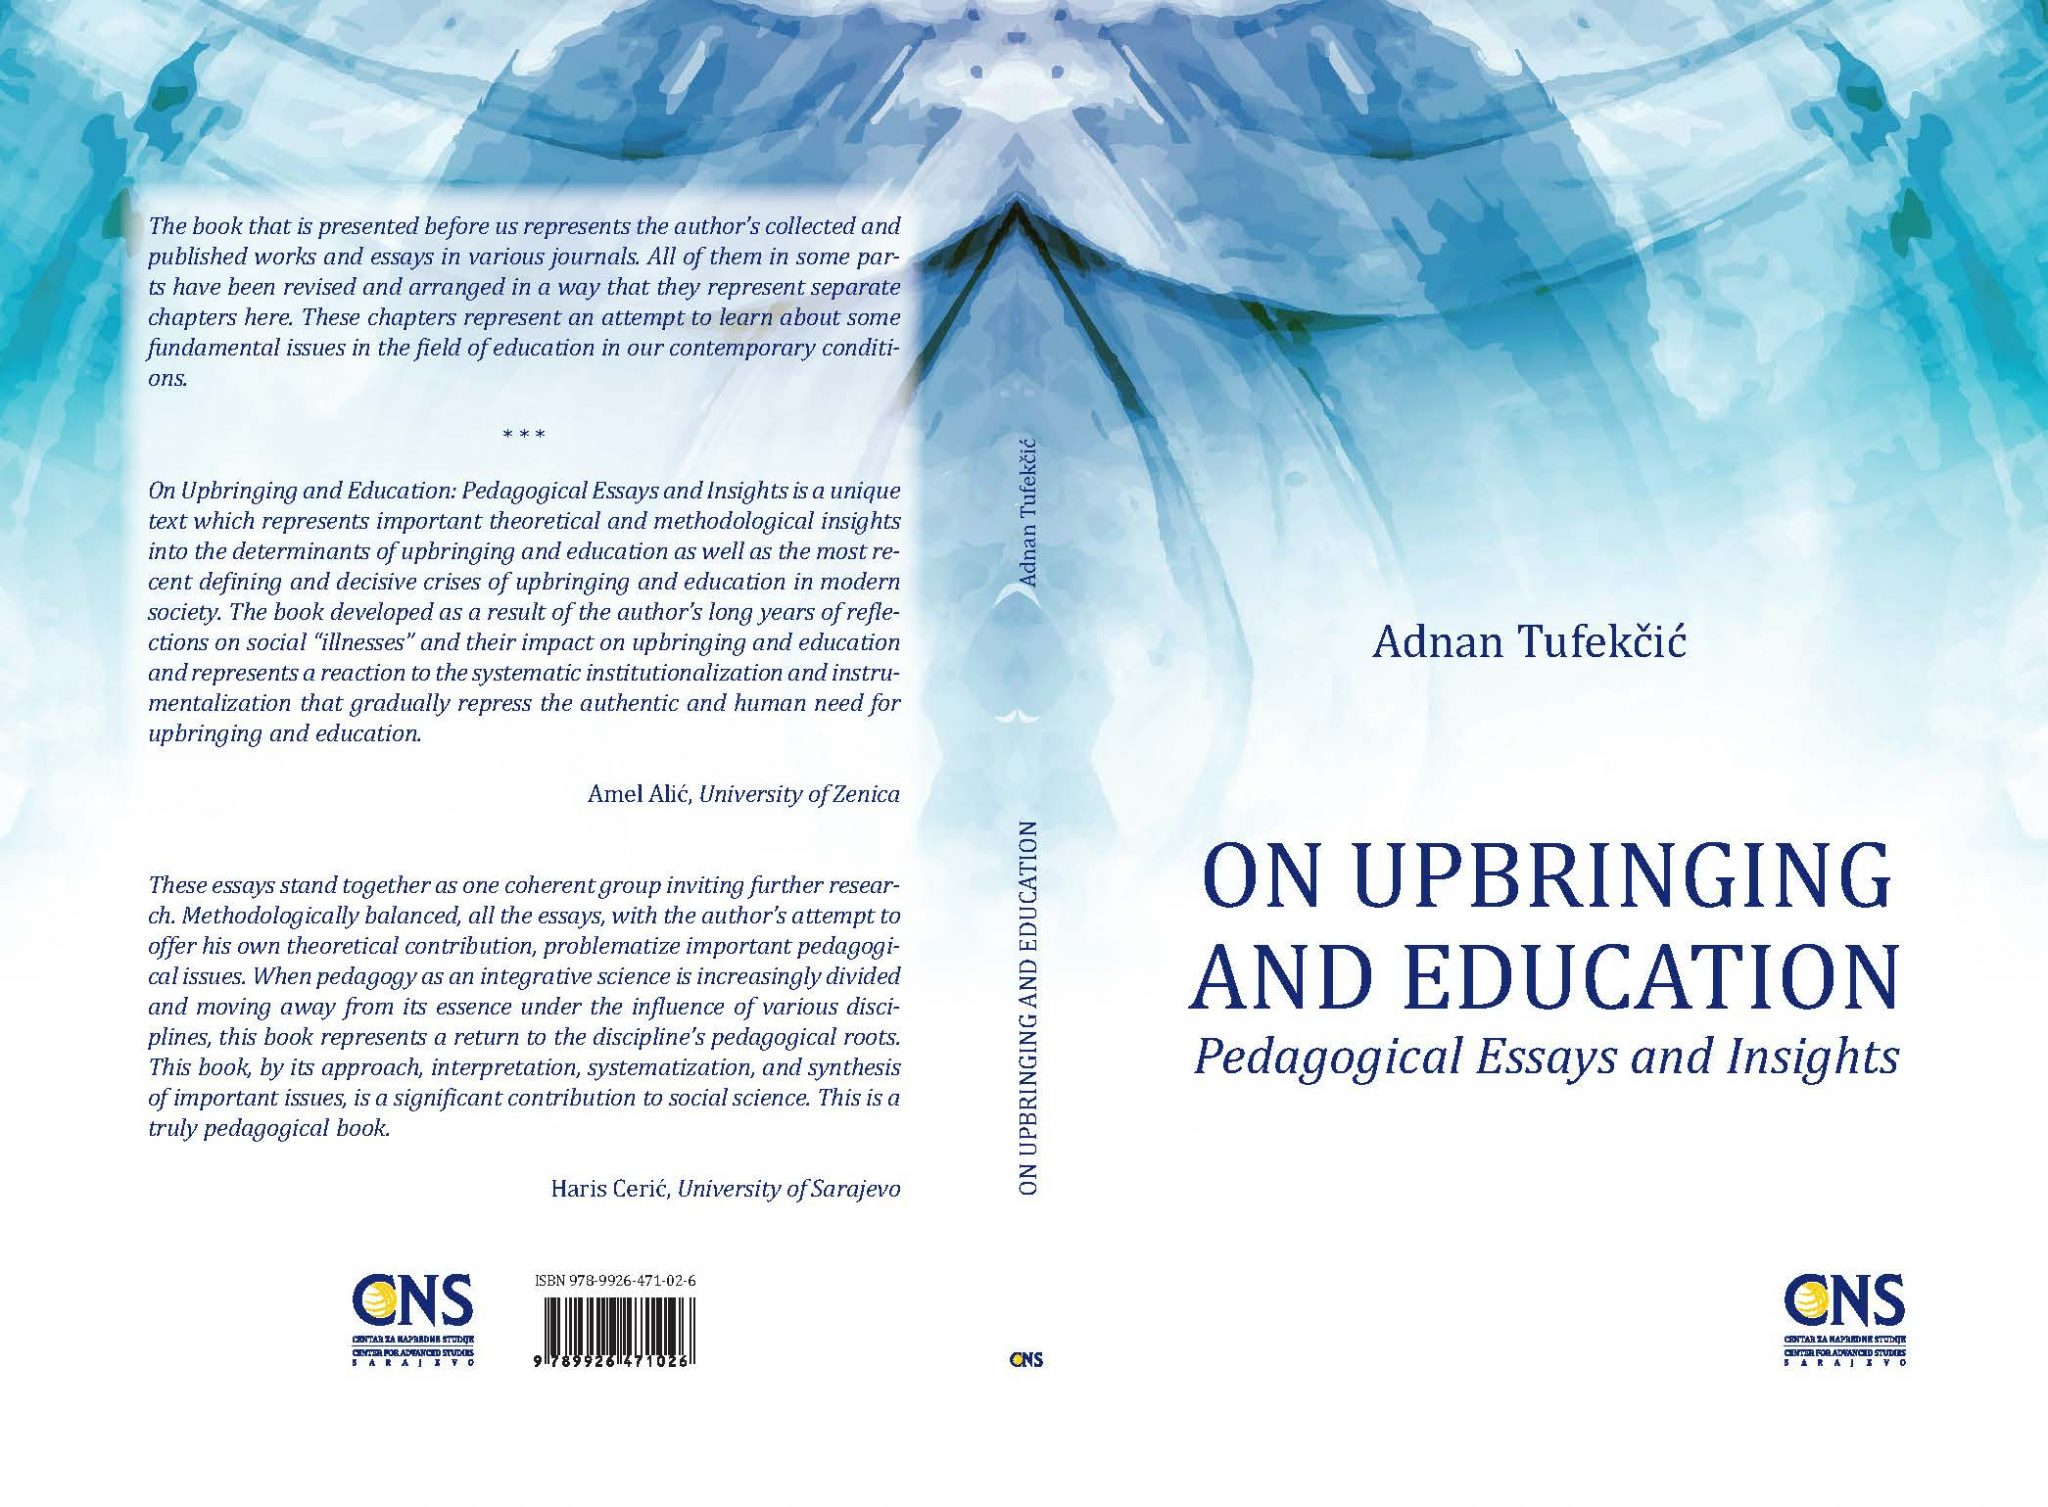 On Upbringing and Education: Pedagogical Essays and Insights